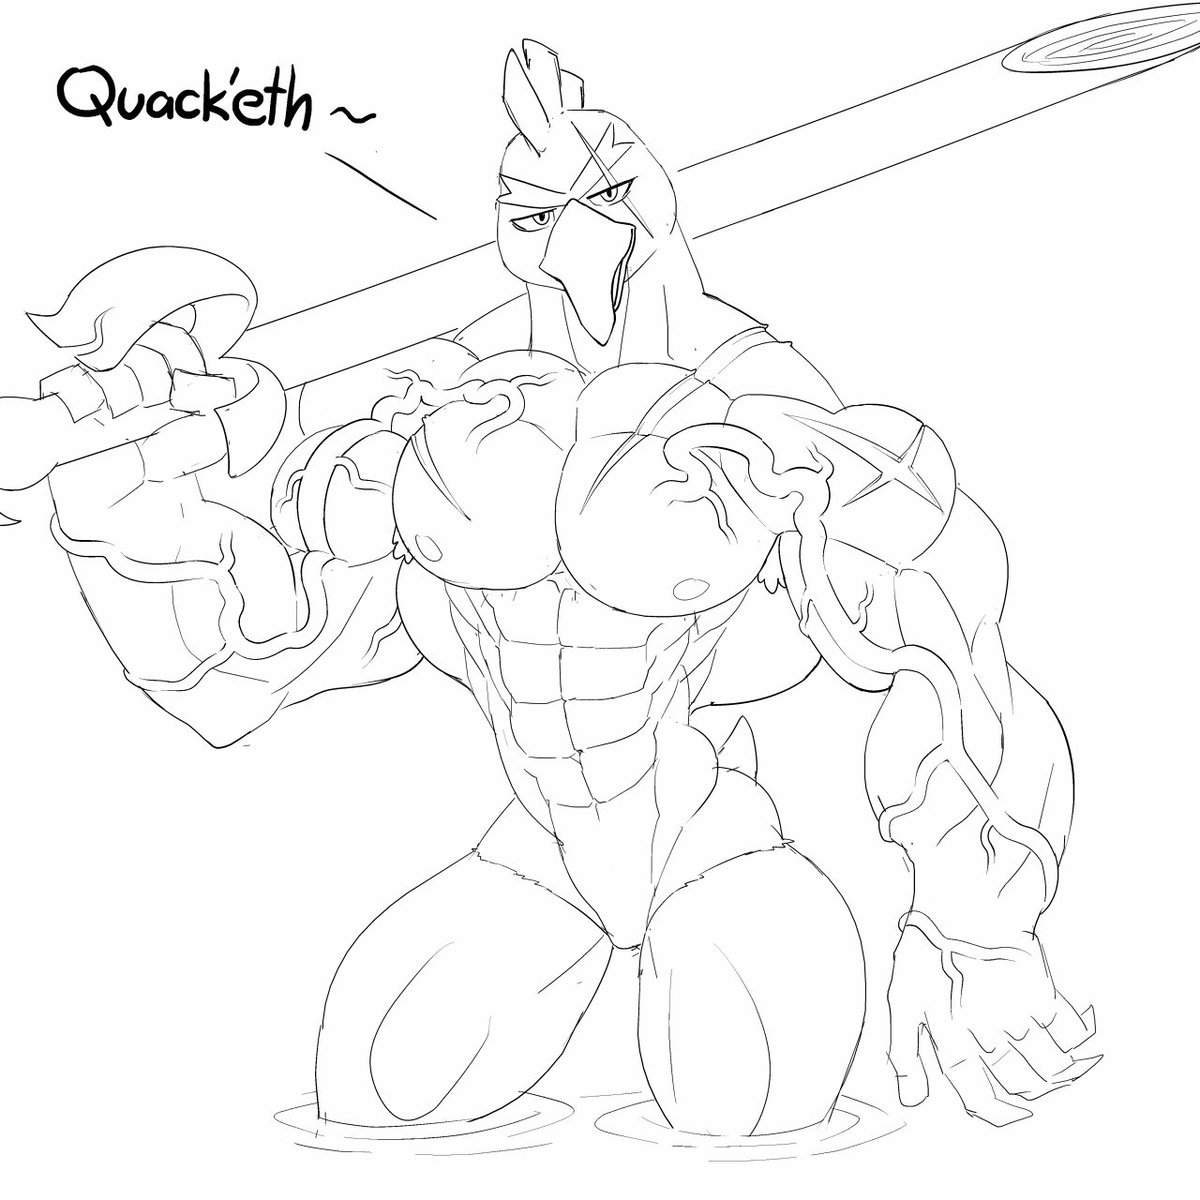 There's still room for JACKED DUCK, yes? :3Le Sketches#Sirfetchd #PokemonSwordShield #NSFW